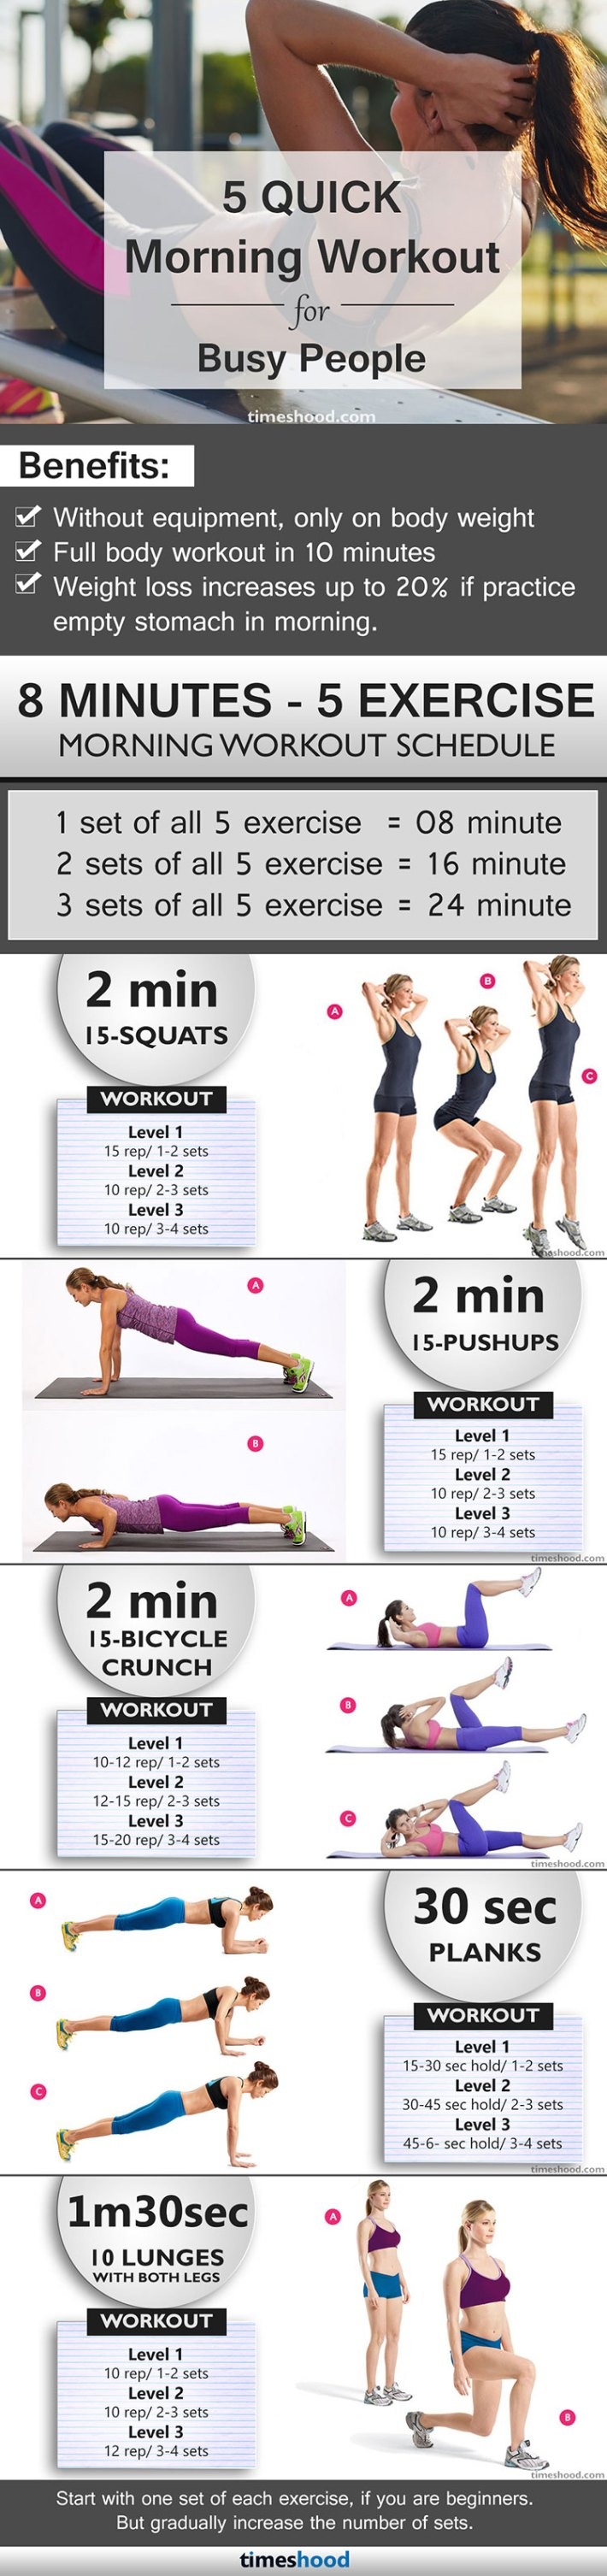 5 quick morning exercise in 8 minutes, especially design for busy people, Quick morning workout for women, Fast weight loss workout for beginners at home.